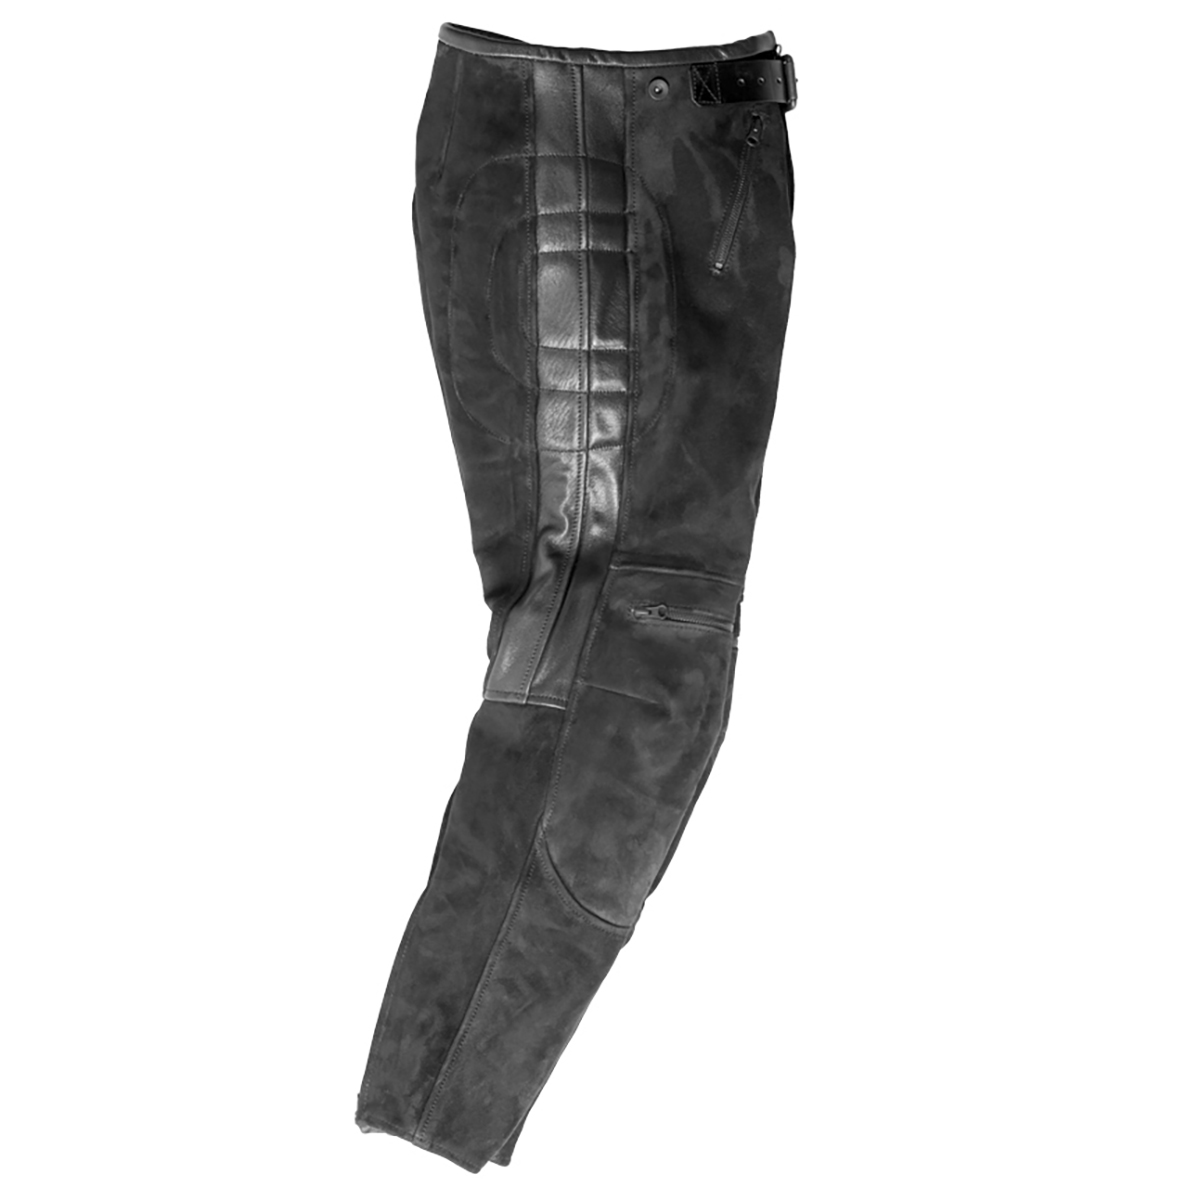 xrascal-leather-motorcycle-pants-black.jpg.pagespeed.ic.hL7O0SxudB